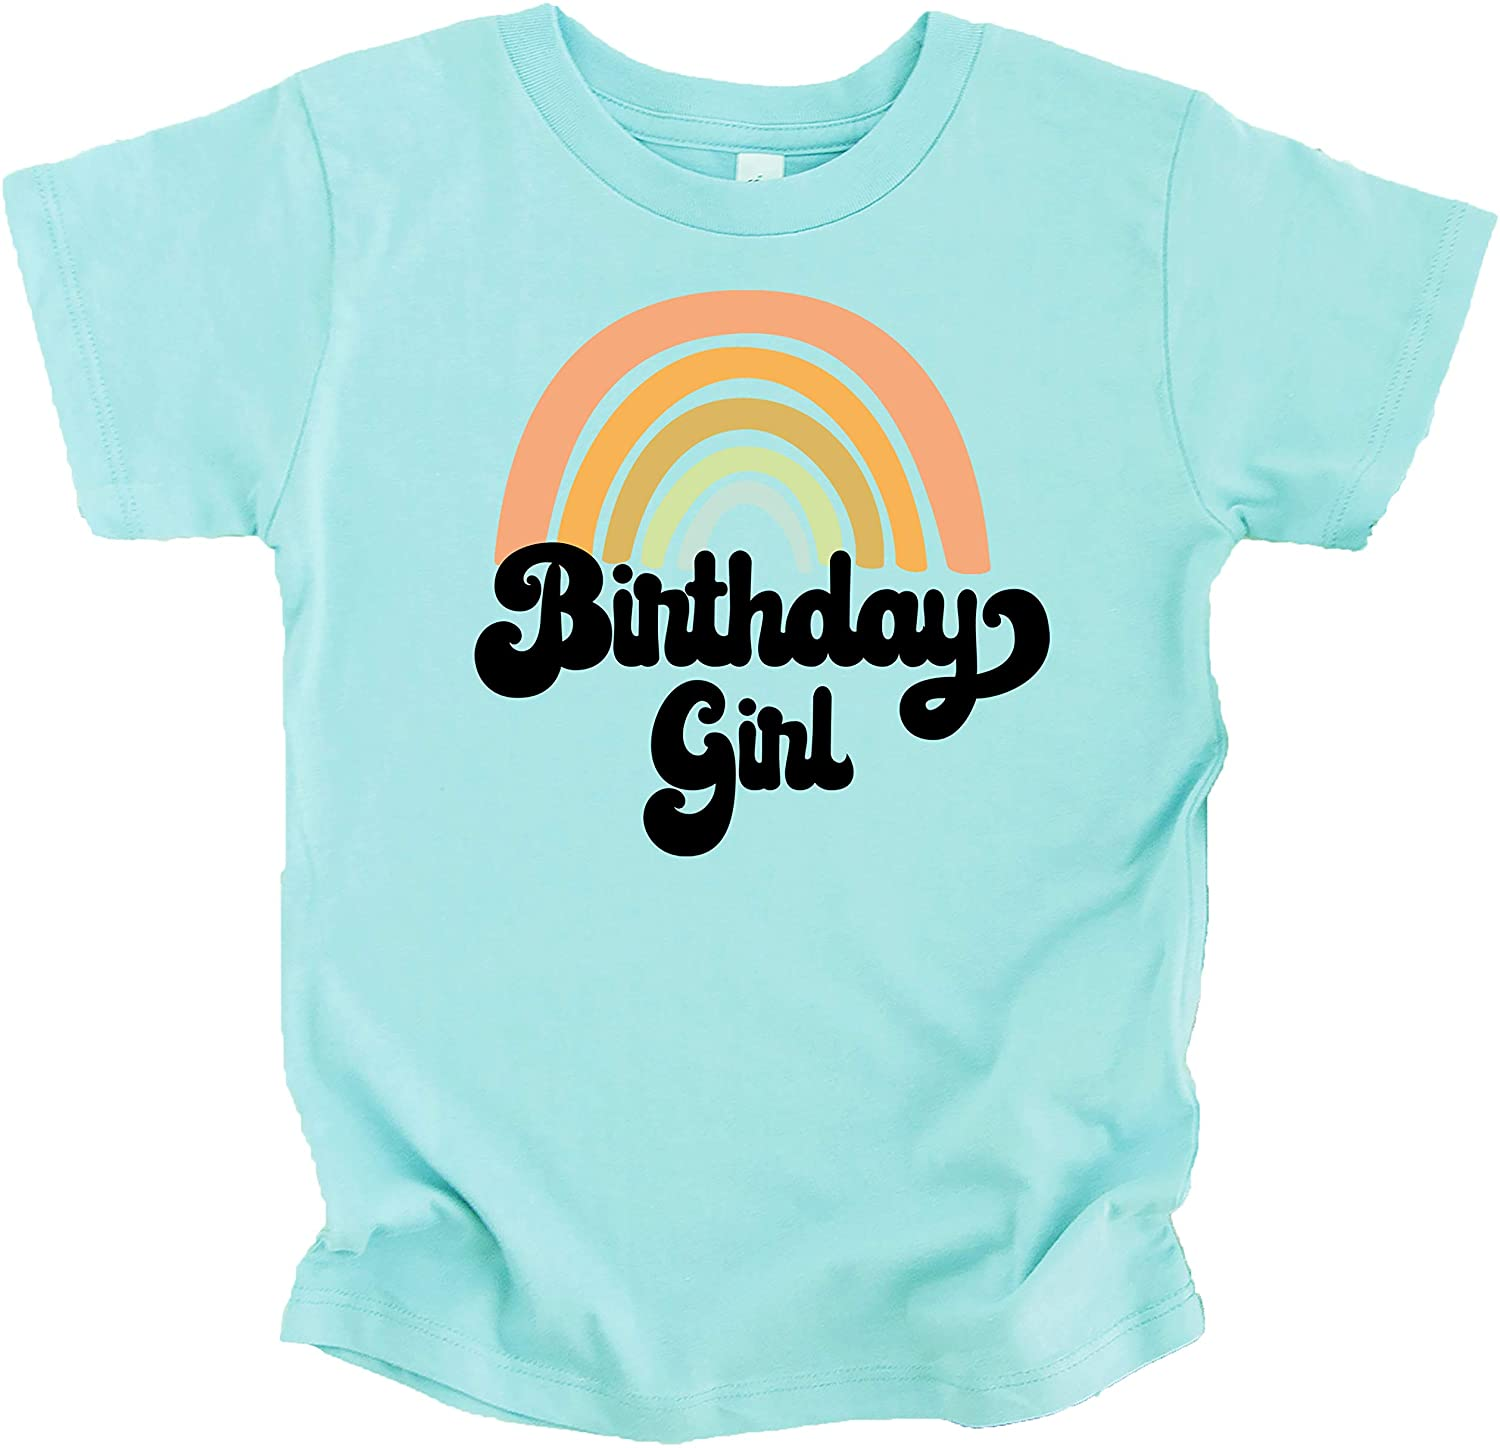 Retro Rainbow Birthday Girl Colorful Shirts for Baby and Toddler Girls Birthday Outfits